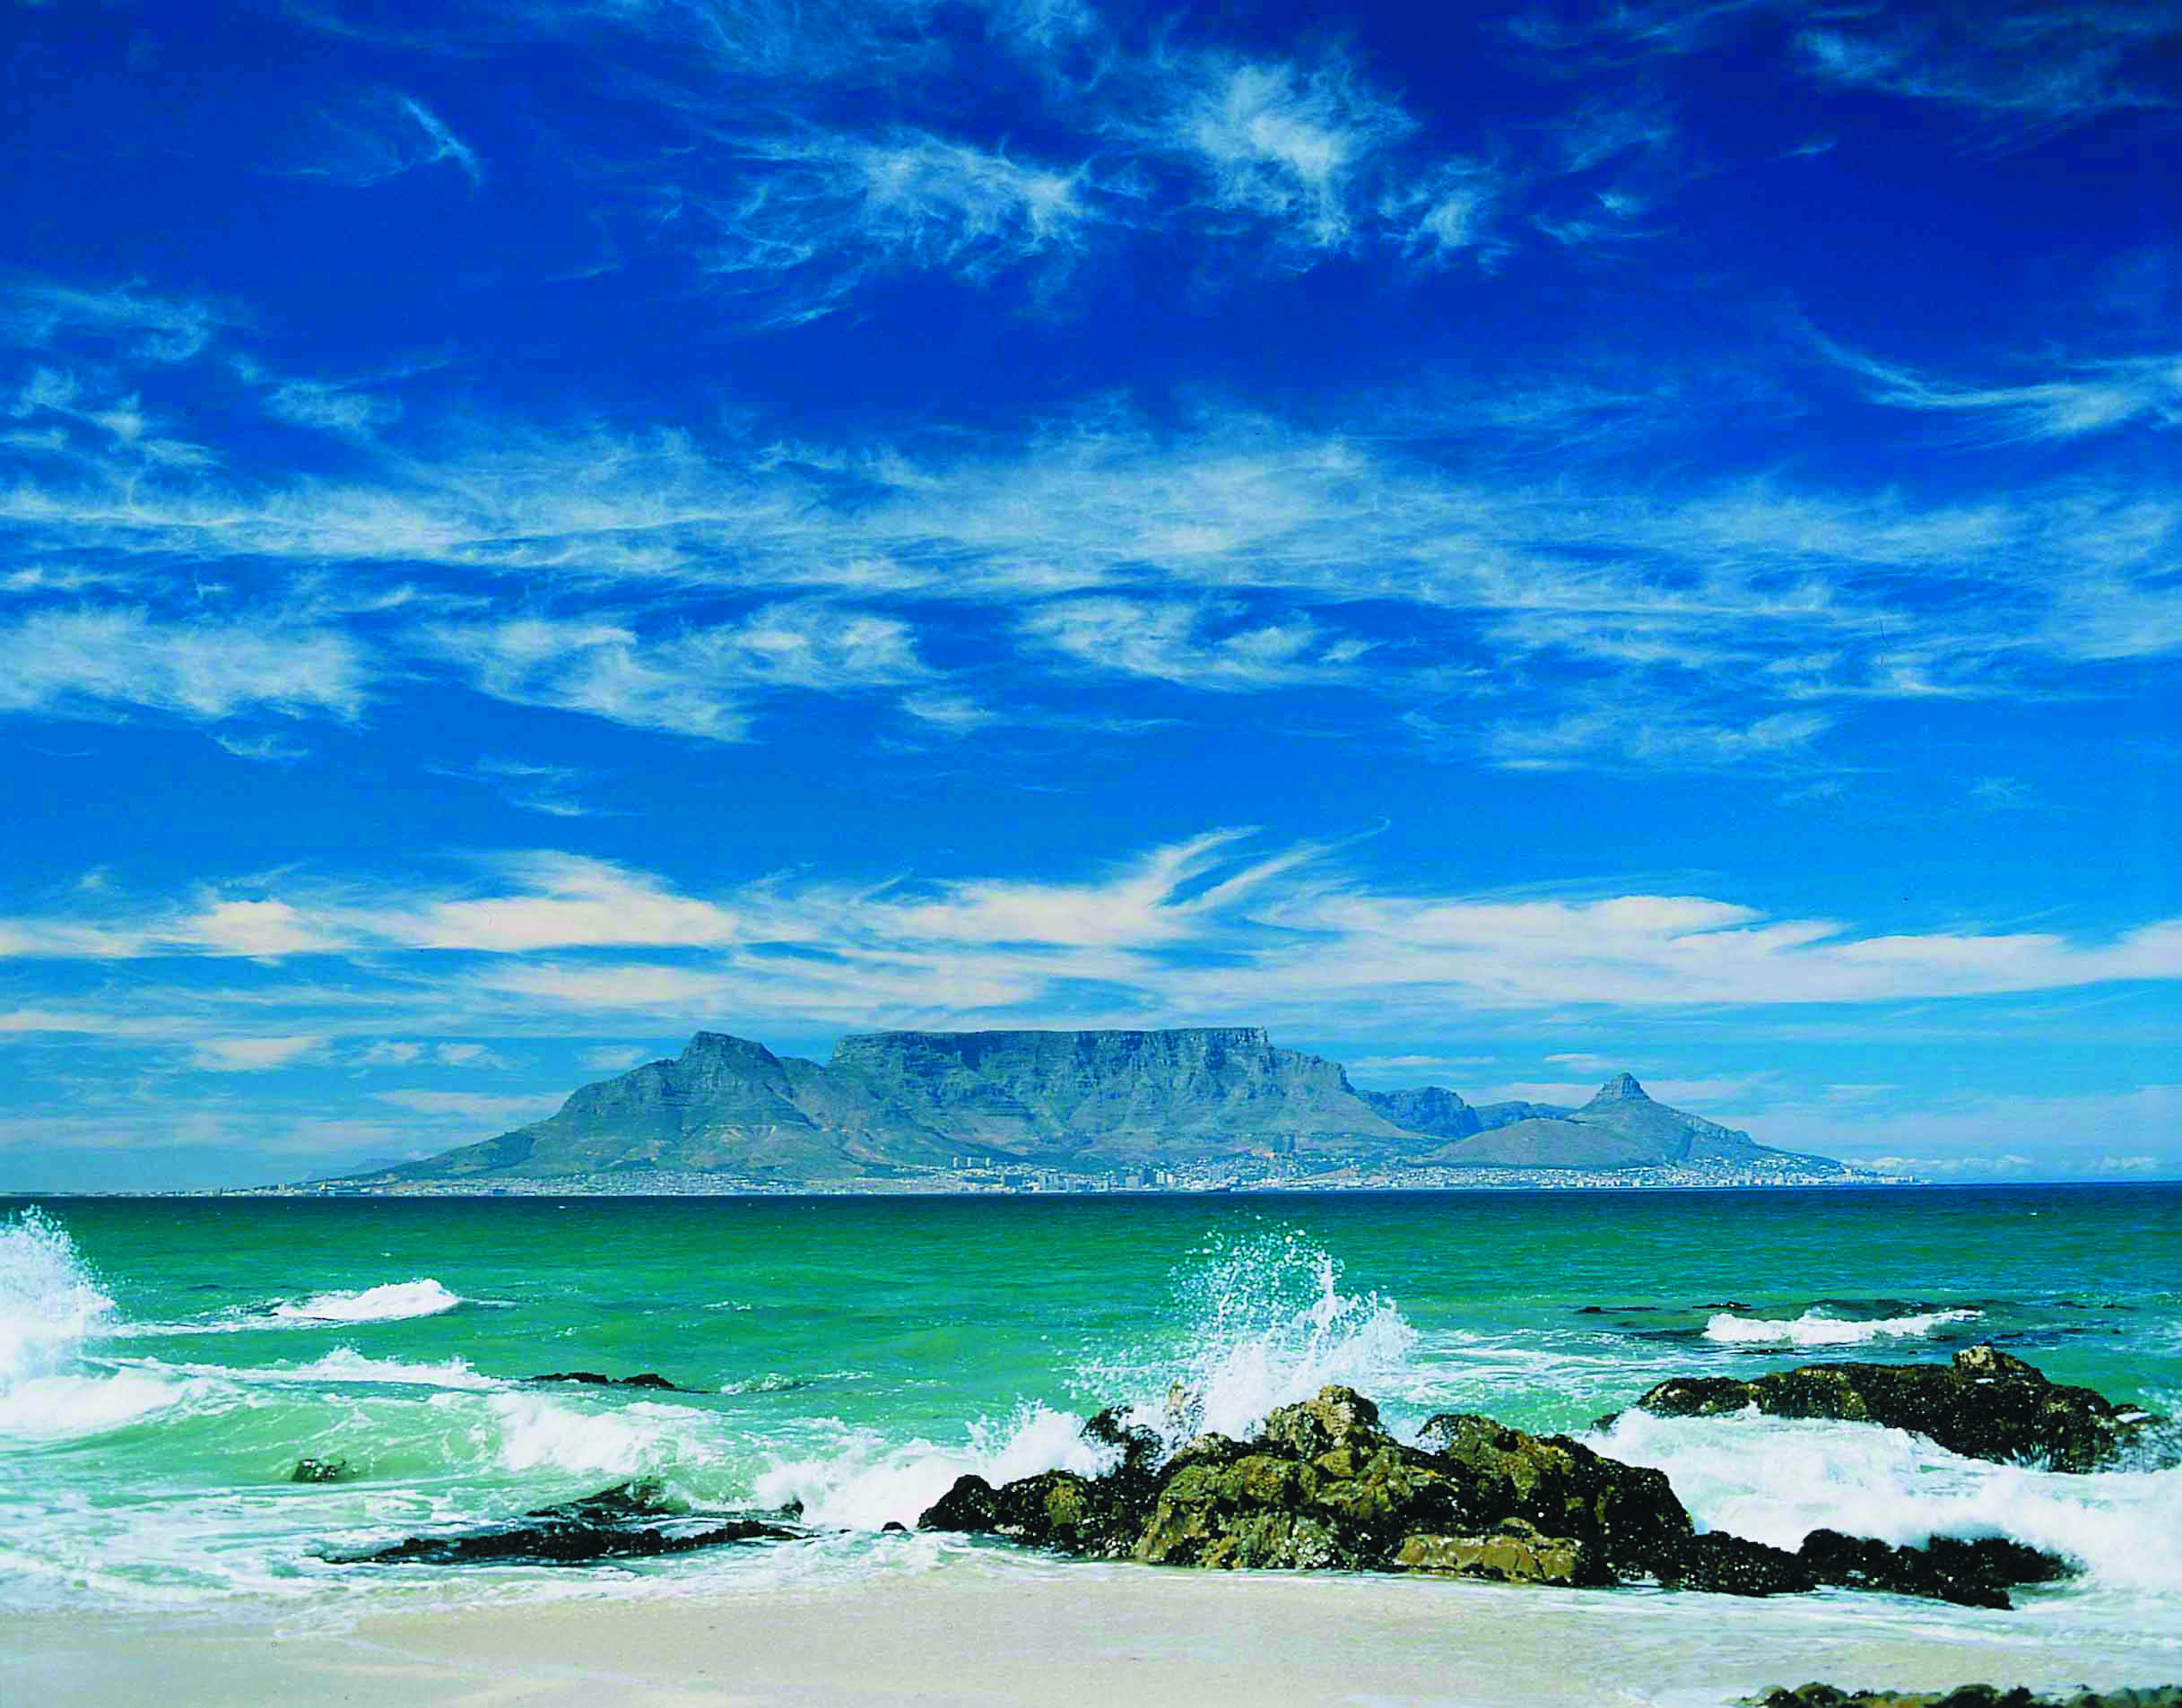 The view of Cape Town from Robben Island